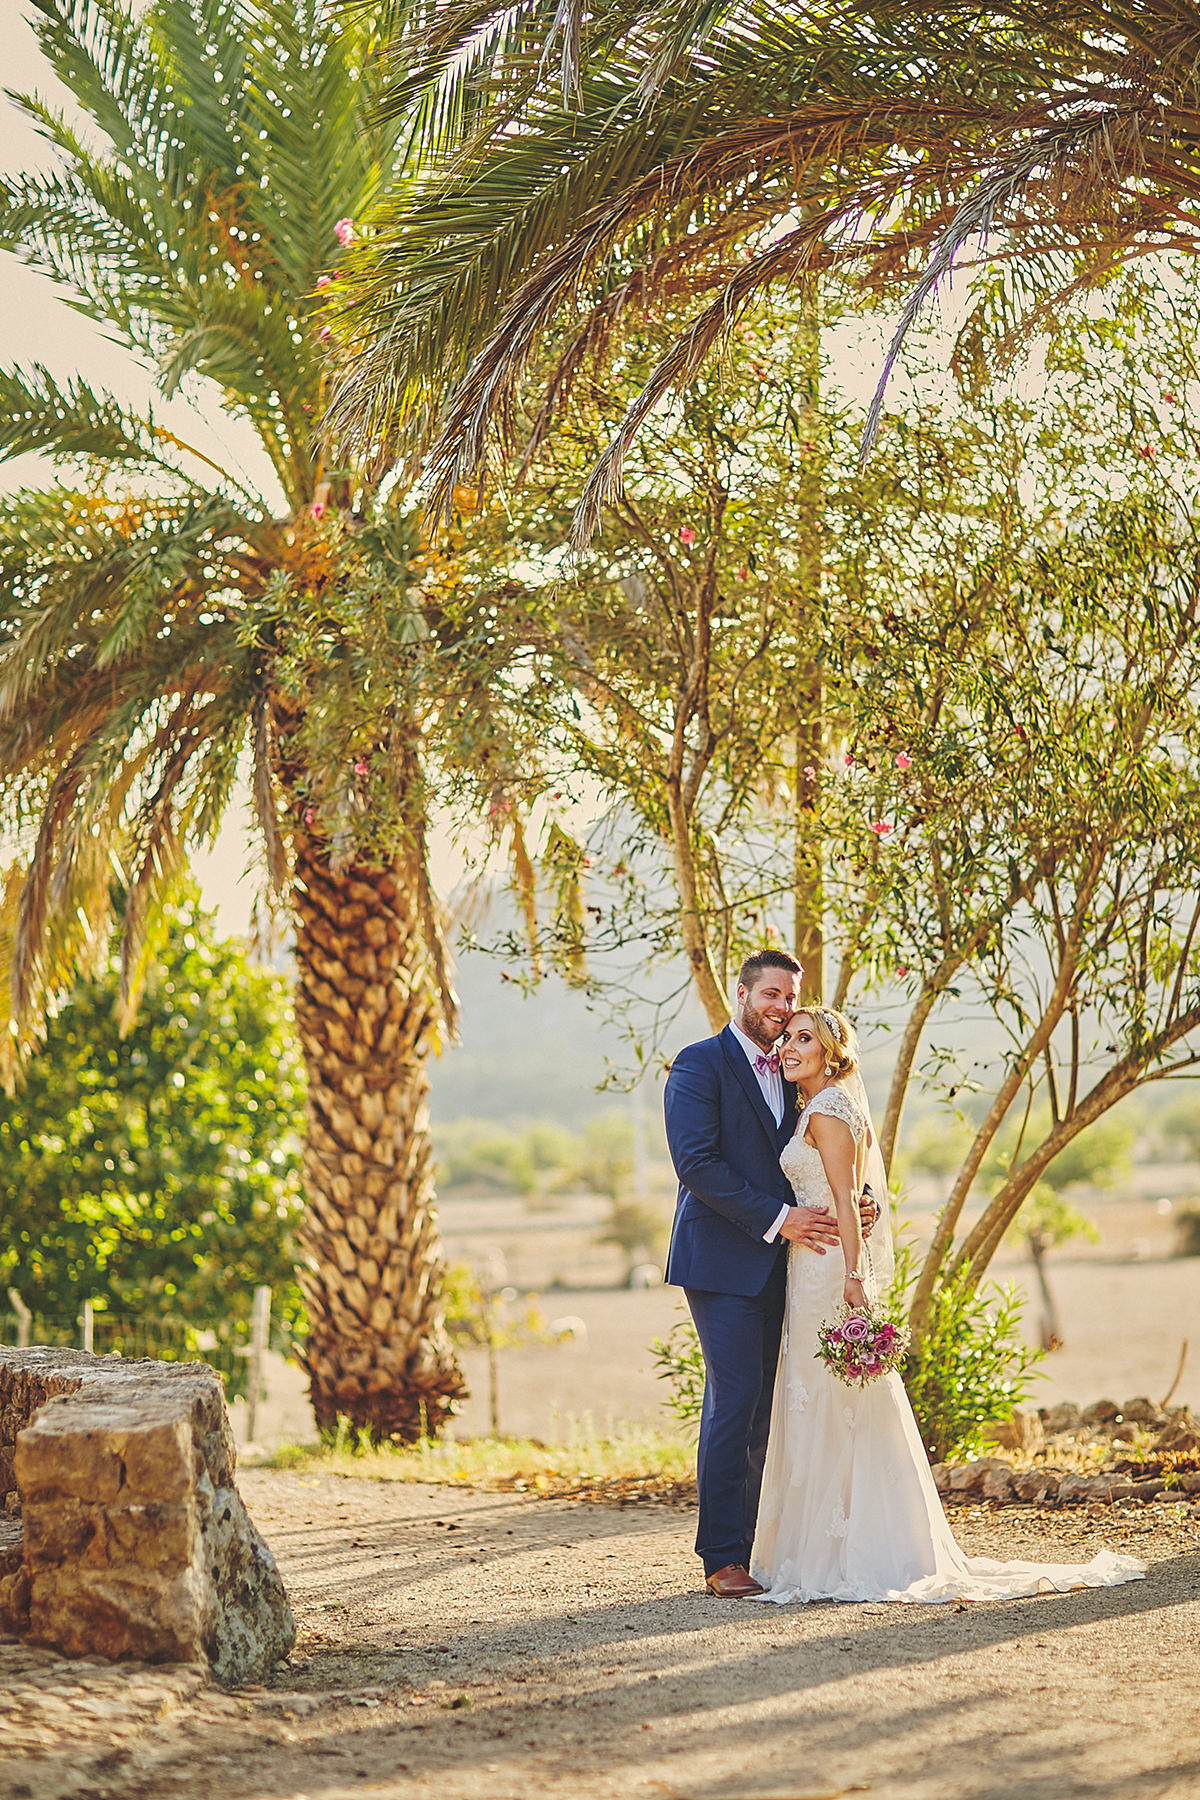 319 - Destination wedding in a magical Mallorca